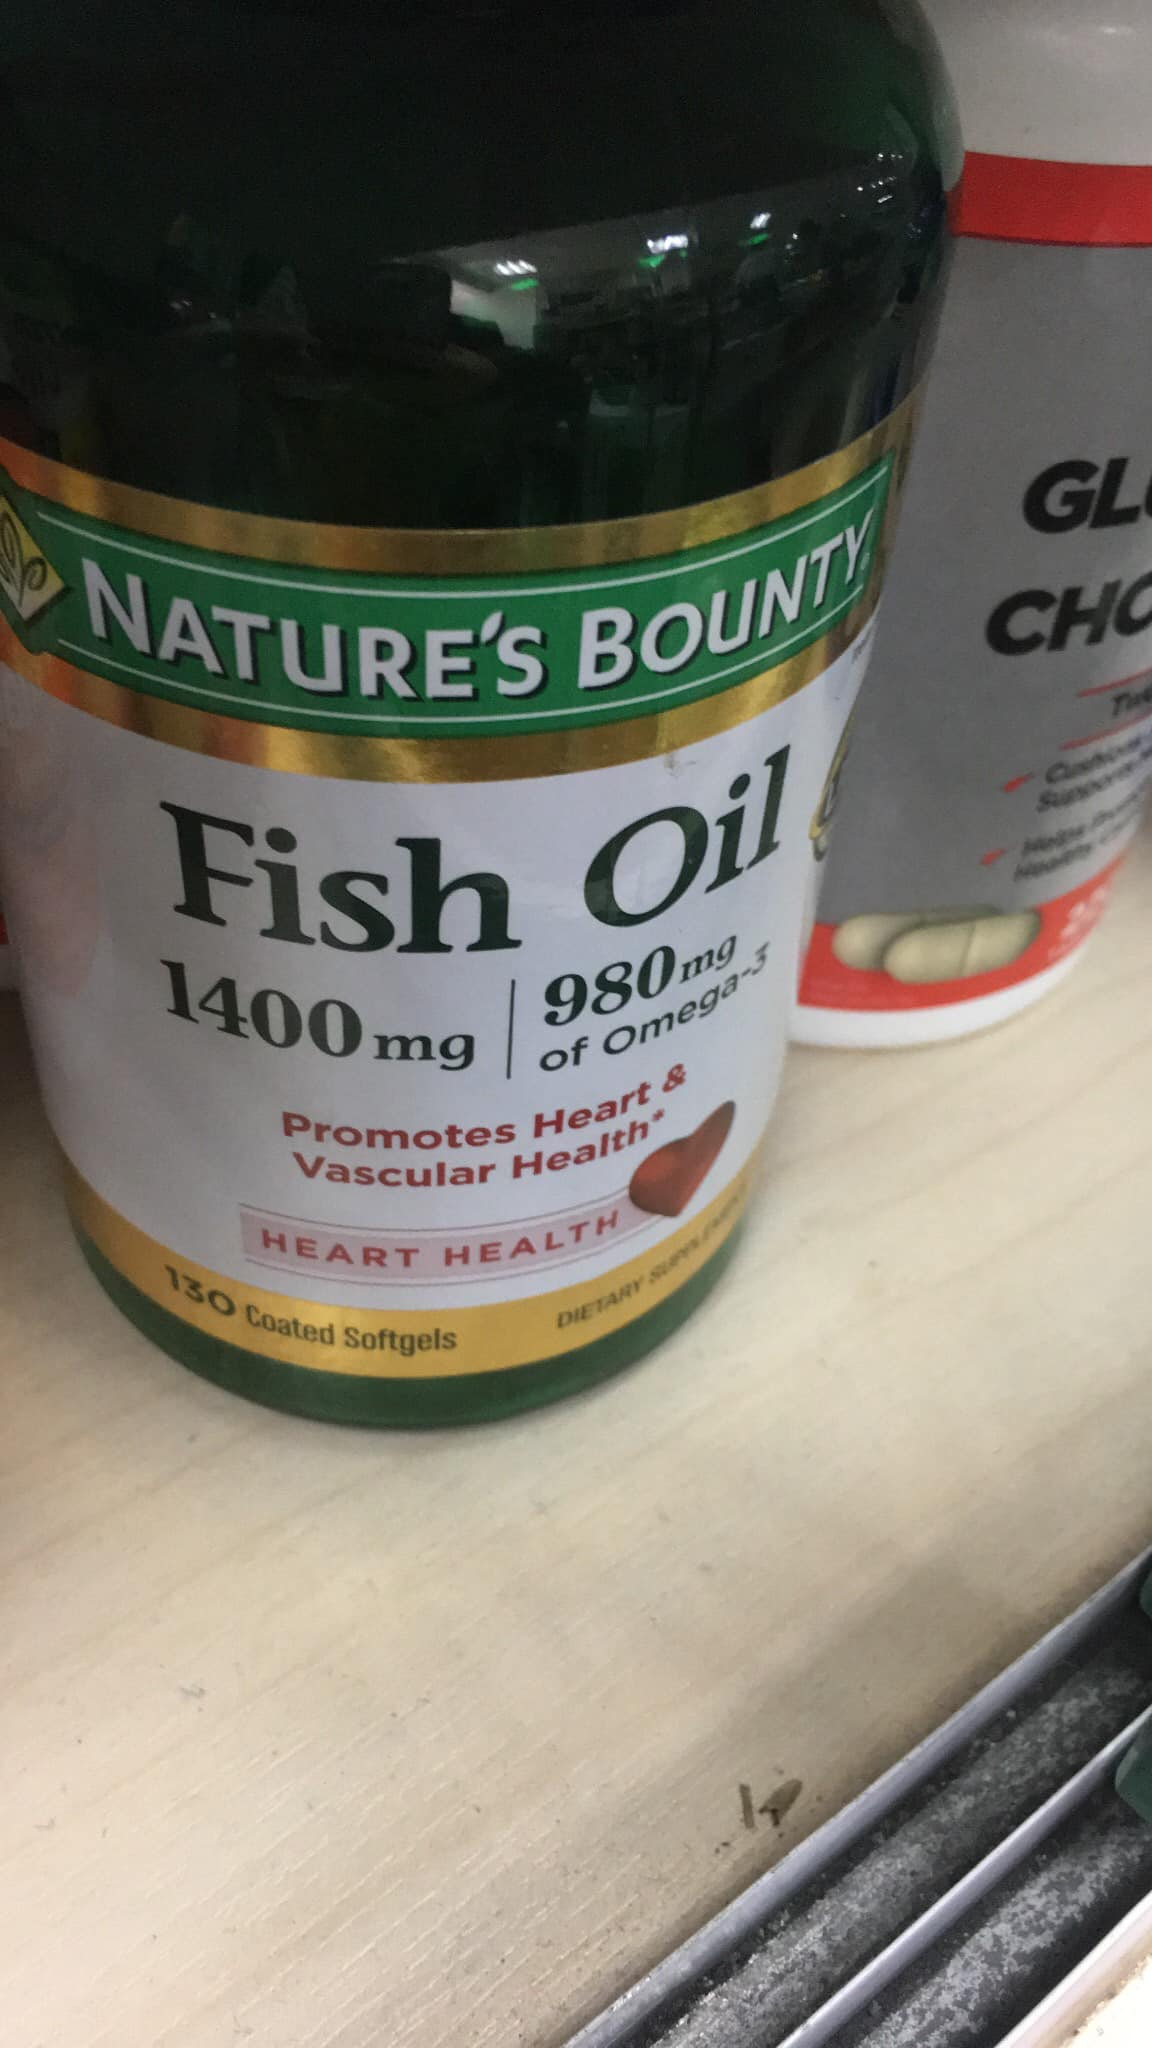 fish-oil-nature-s-bounty-1400mg-130-vien